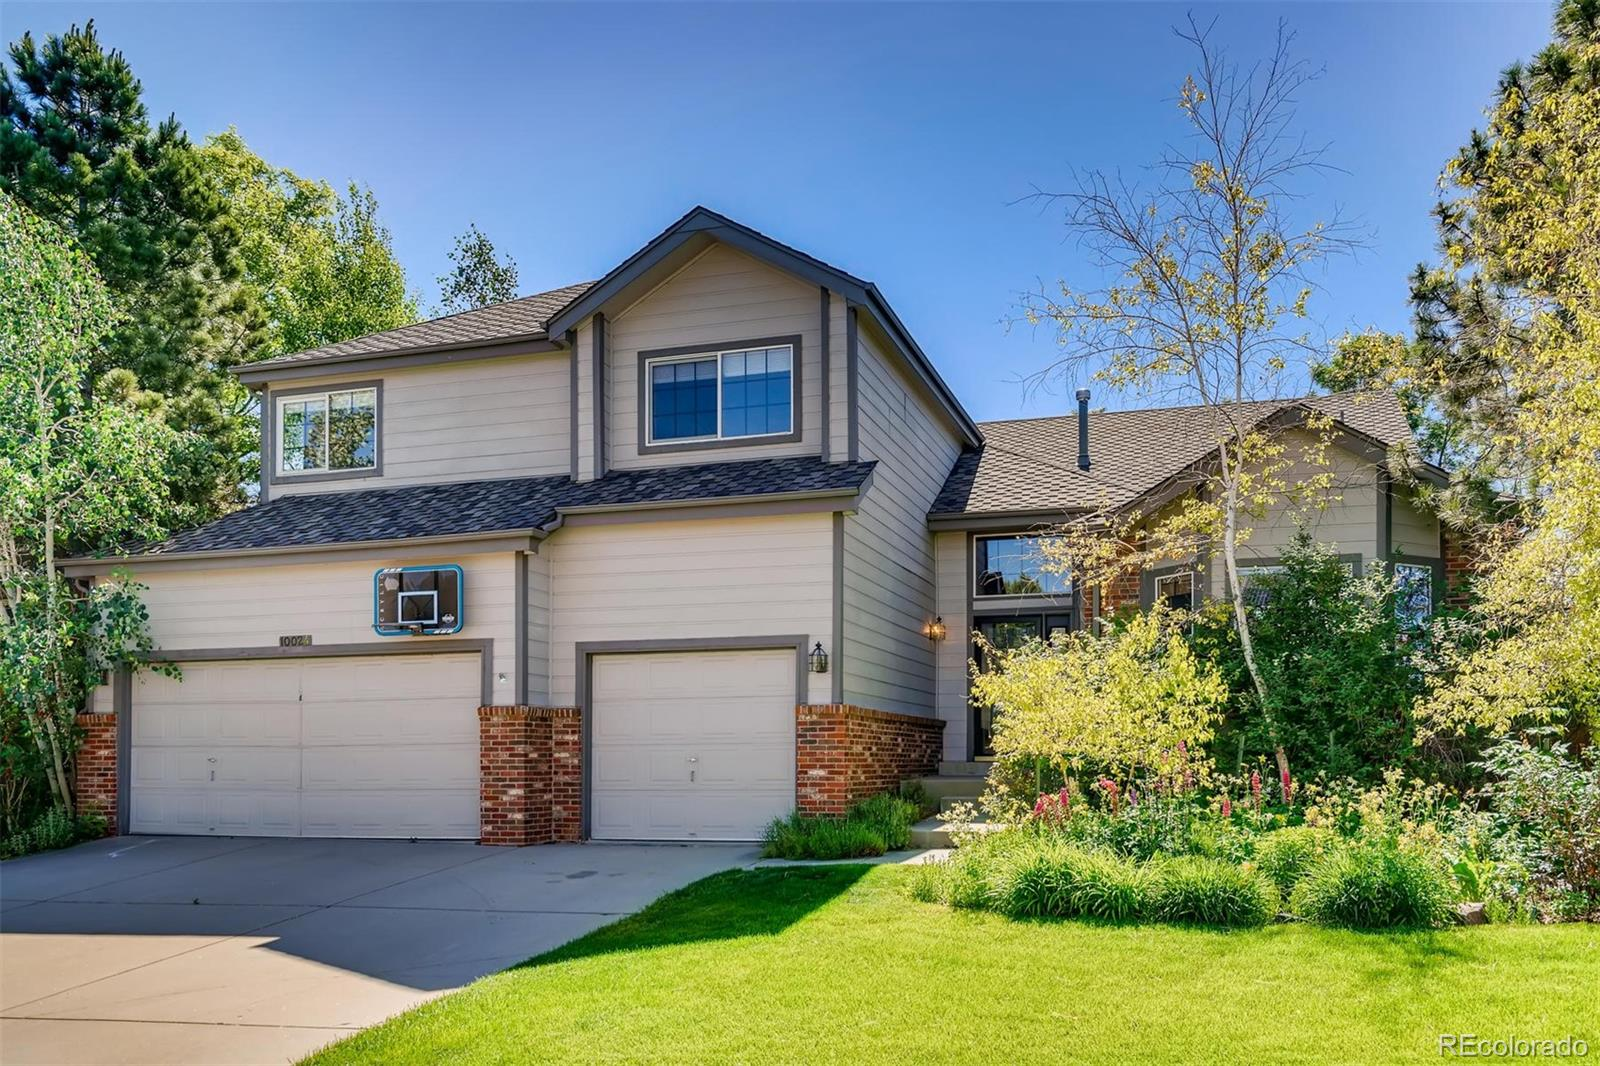 MLS# 1567040 - 1 - 10024 Cottoncreek Drive, Highlands Ranch, CO 80130